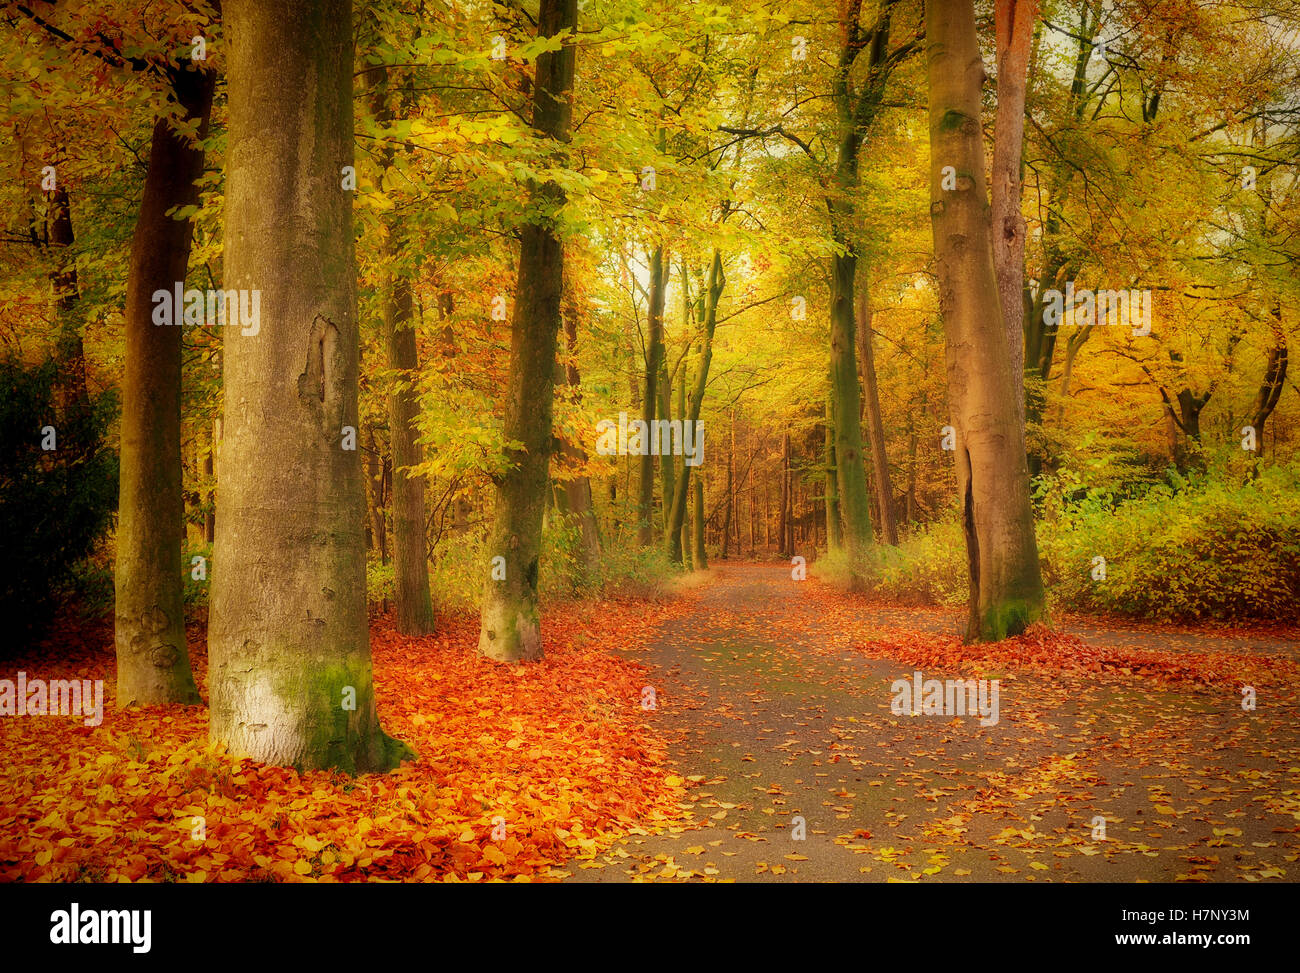 Mystical forest, colorful autumn background - Stock Image